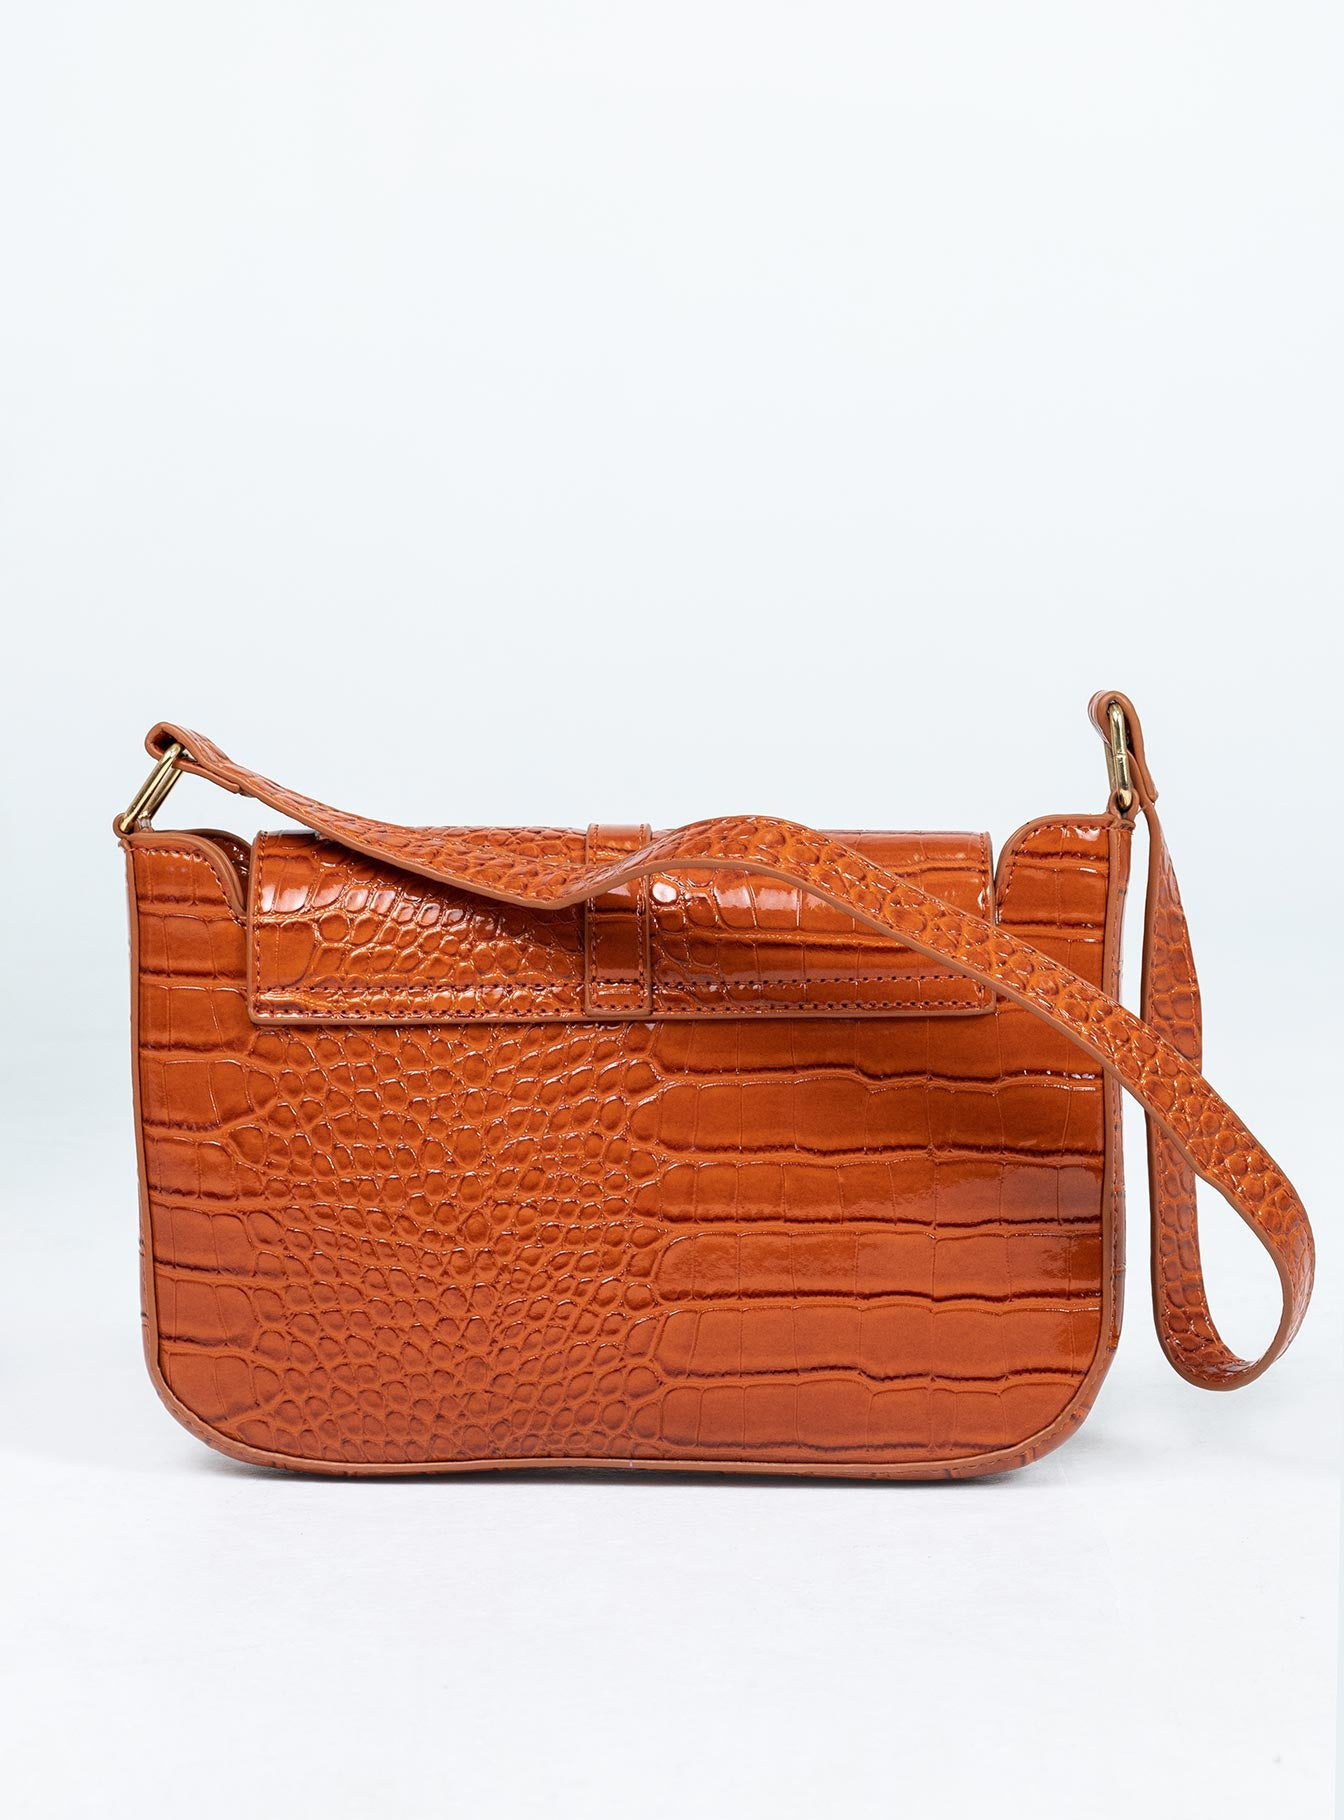 Beckett Bag Brown Croc